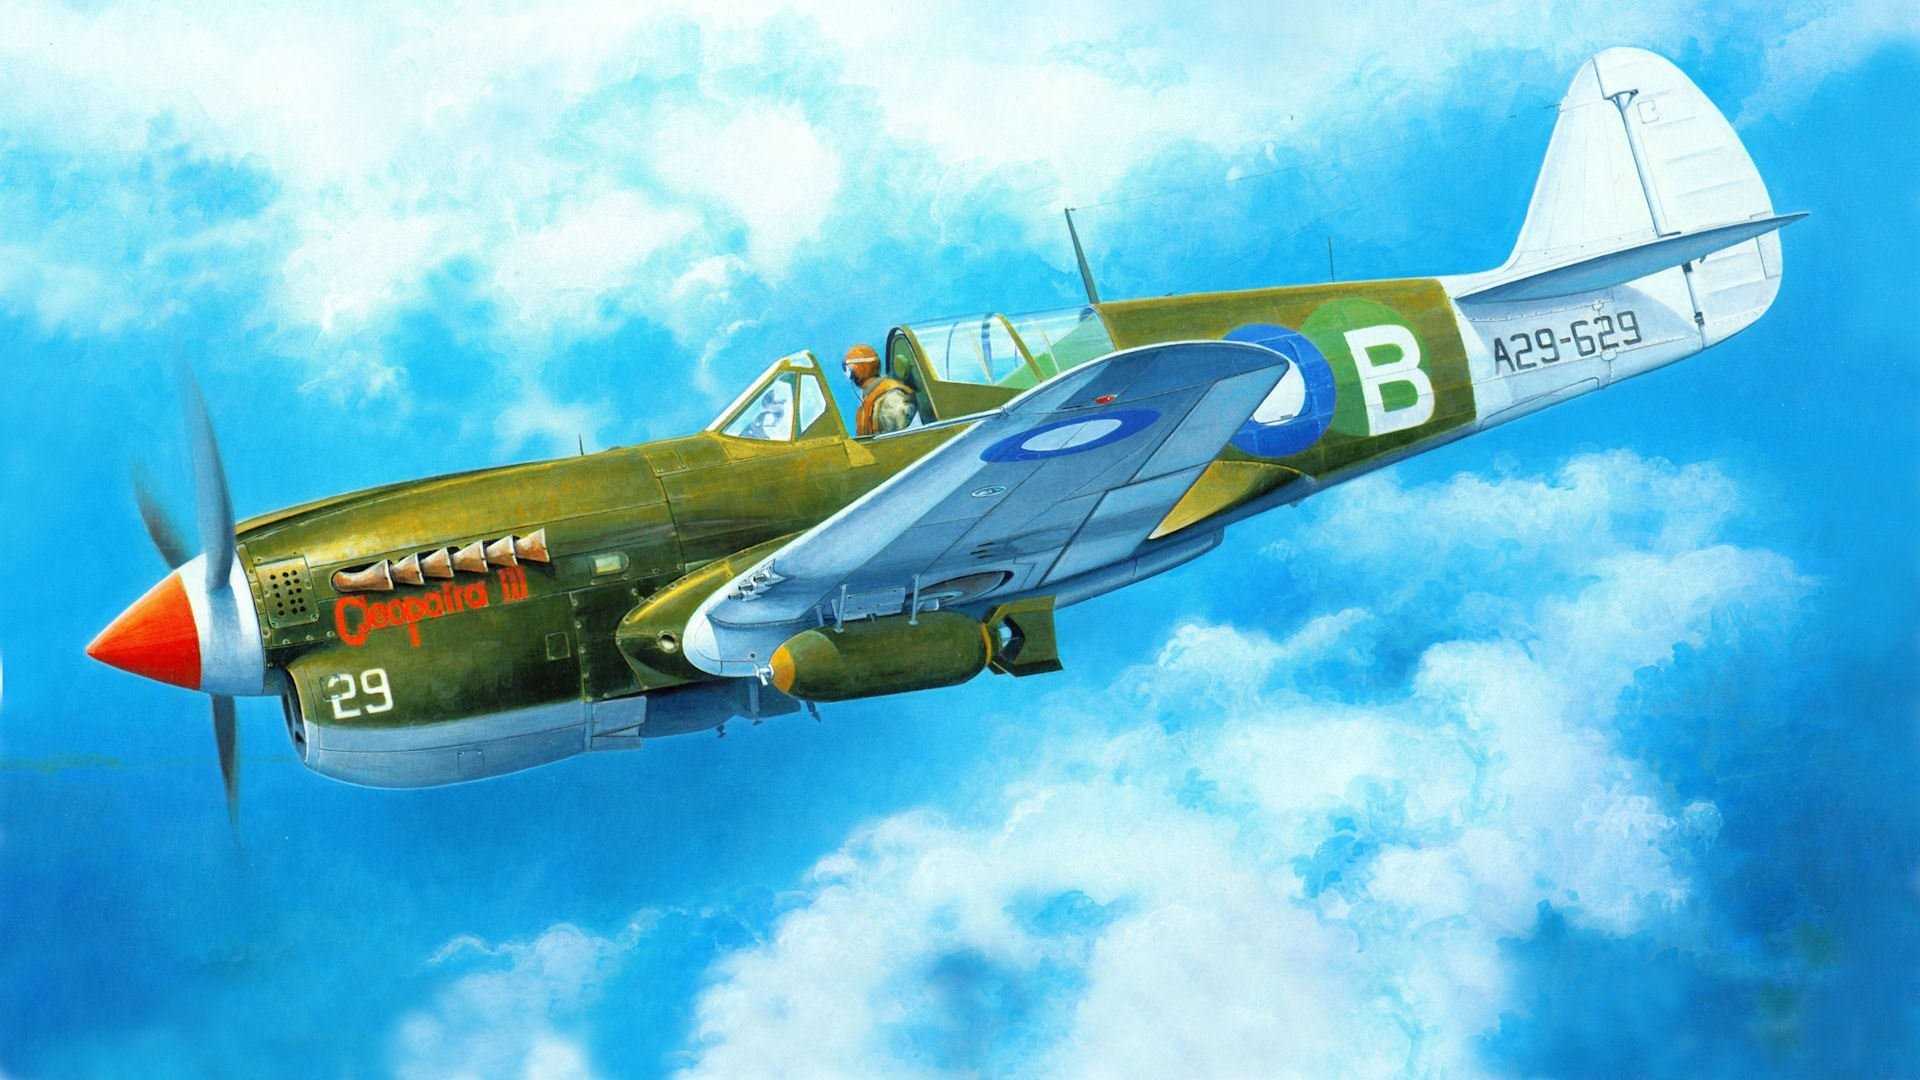 1920x1080 Ww2 Airplane Wallpaper Images)